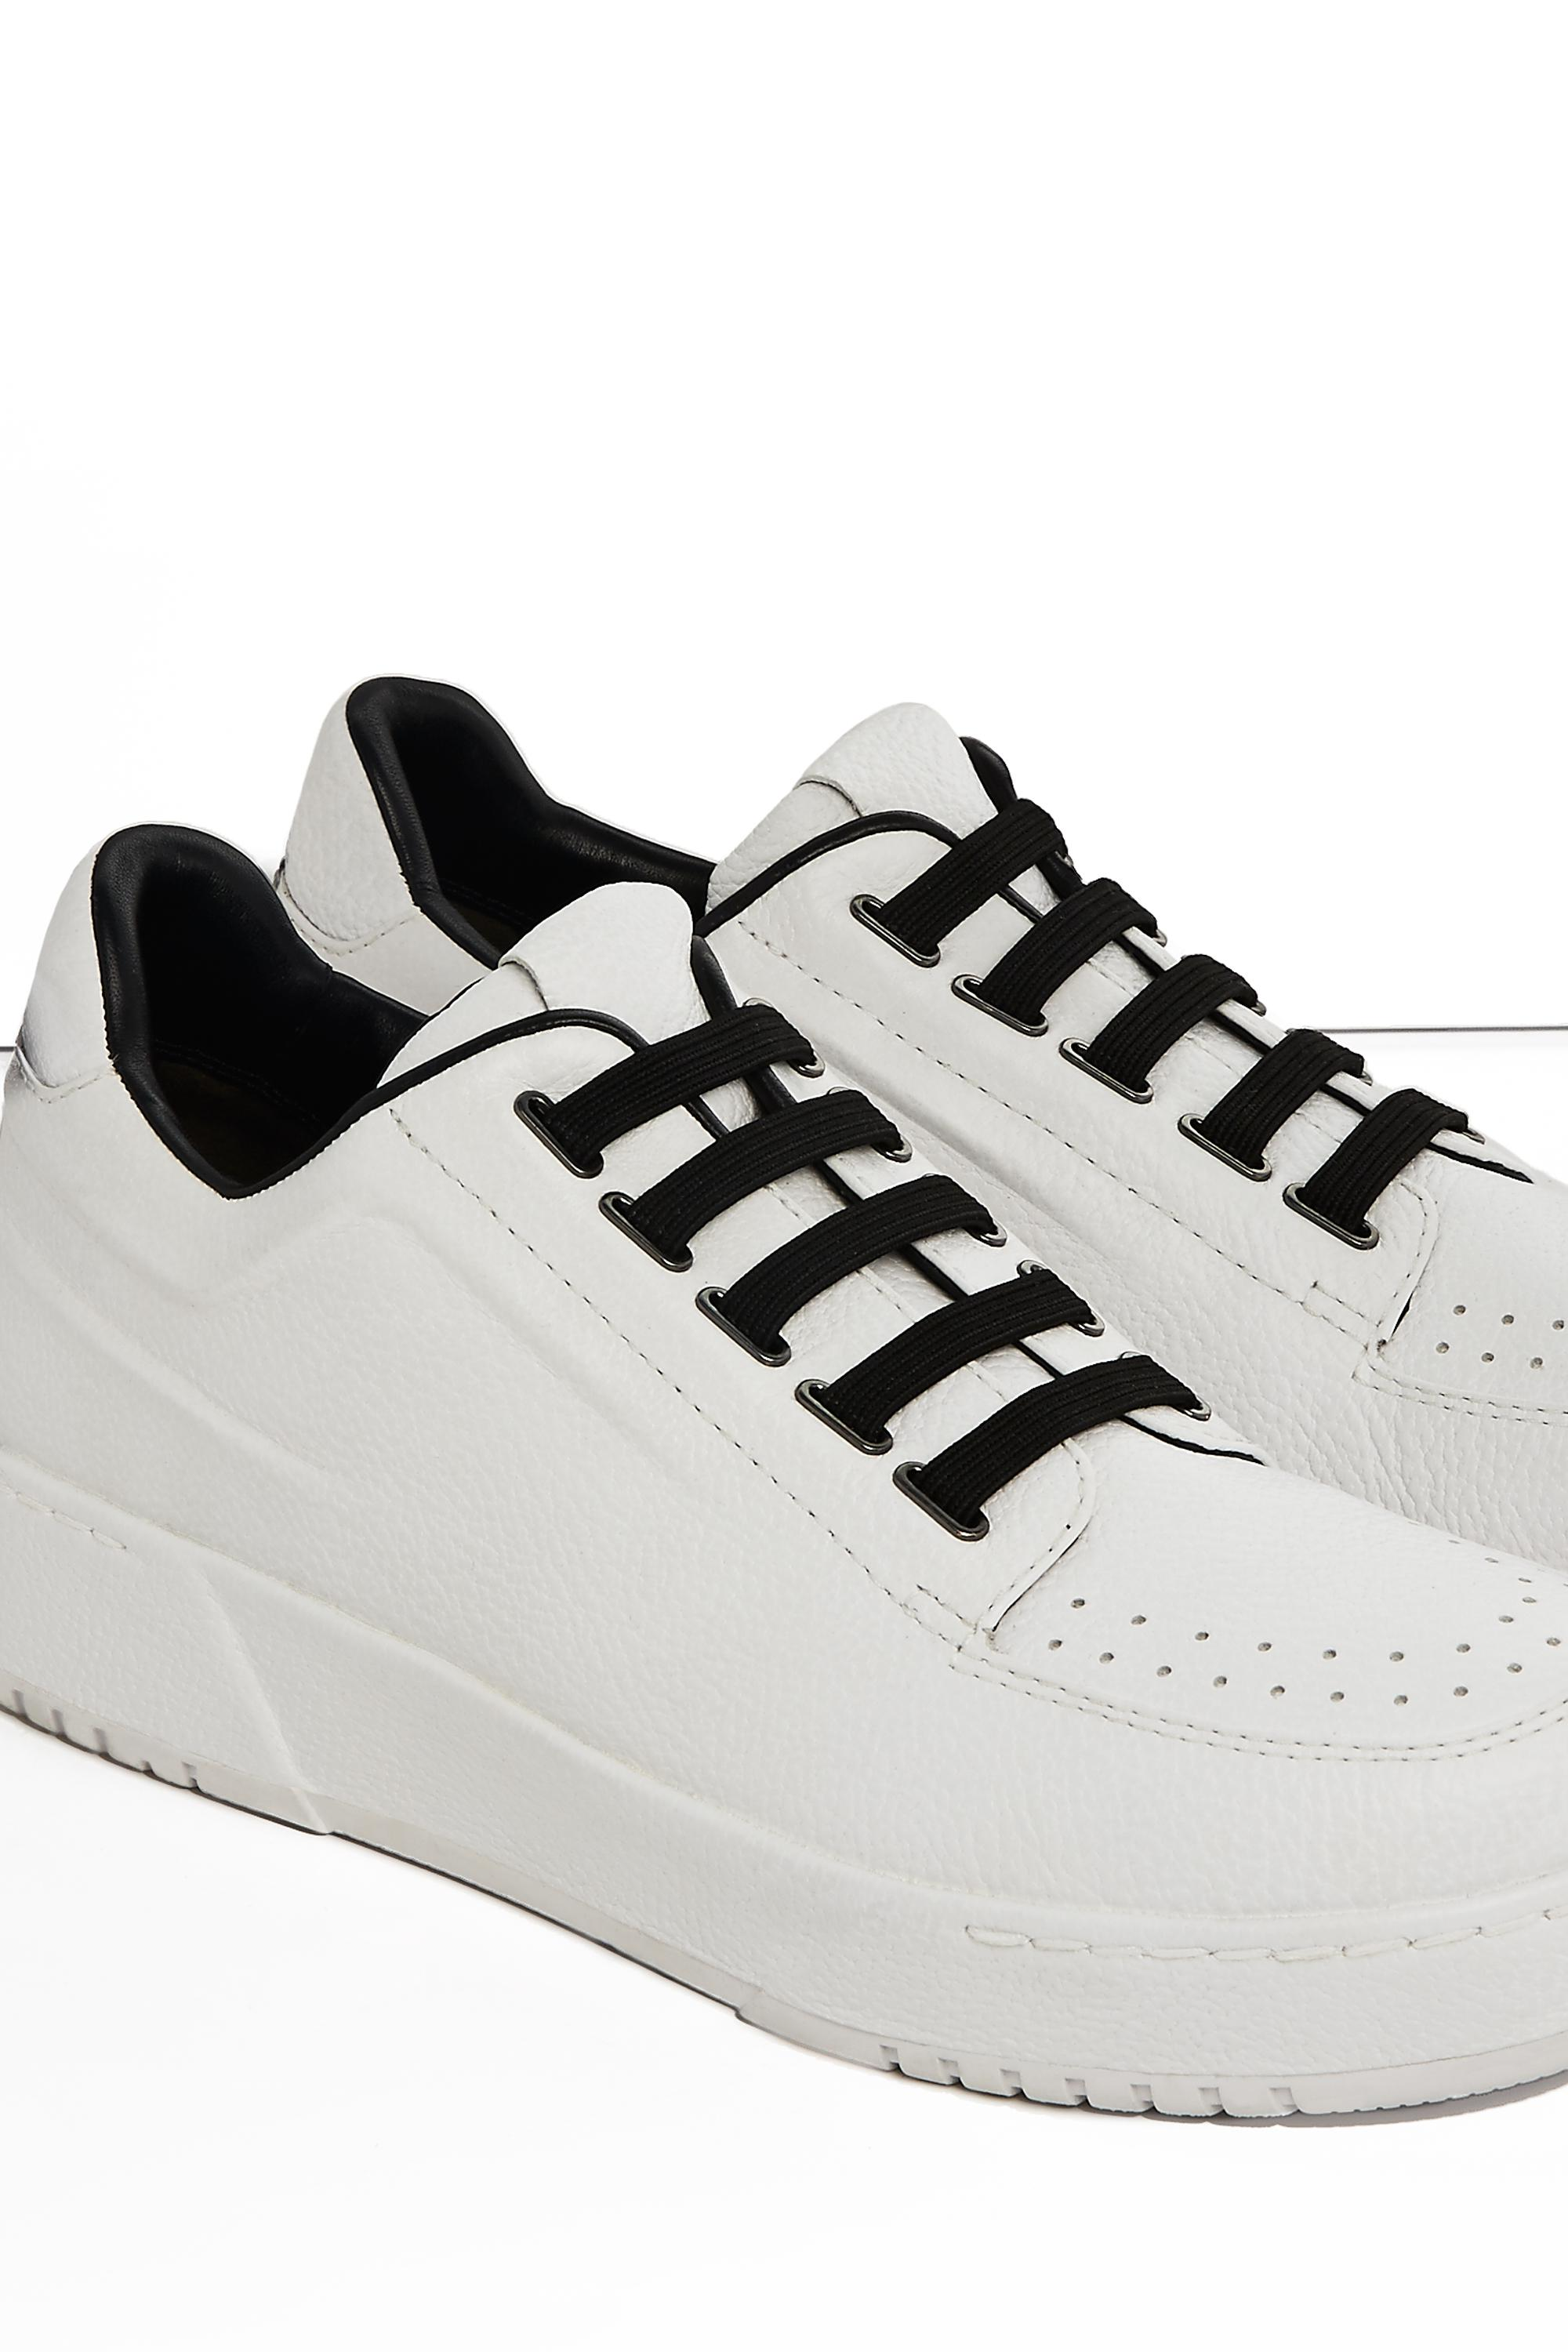 3.1 Phillip Lim Leather Pl31 Low Top Sneaker in White